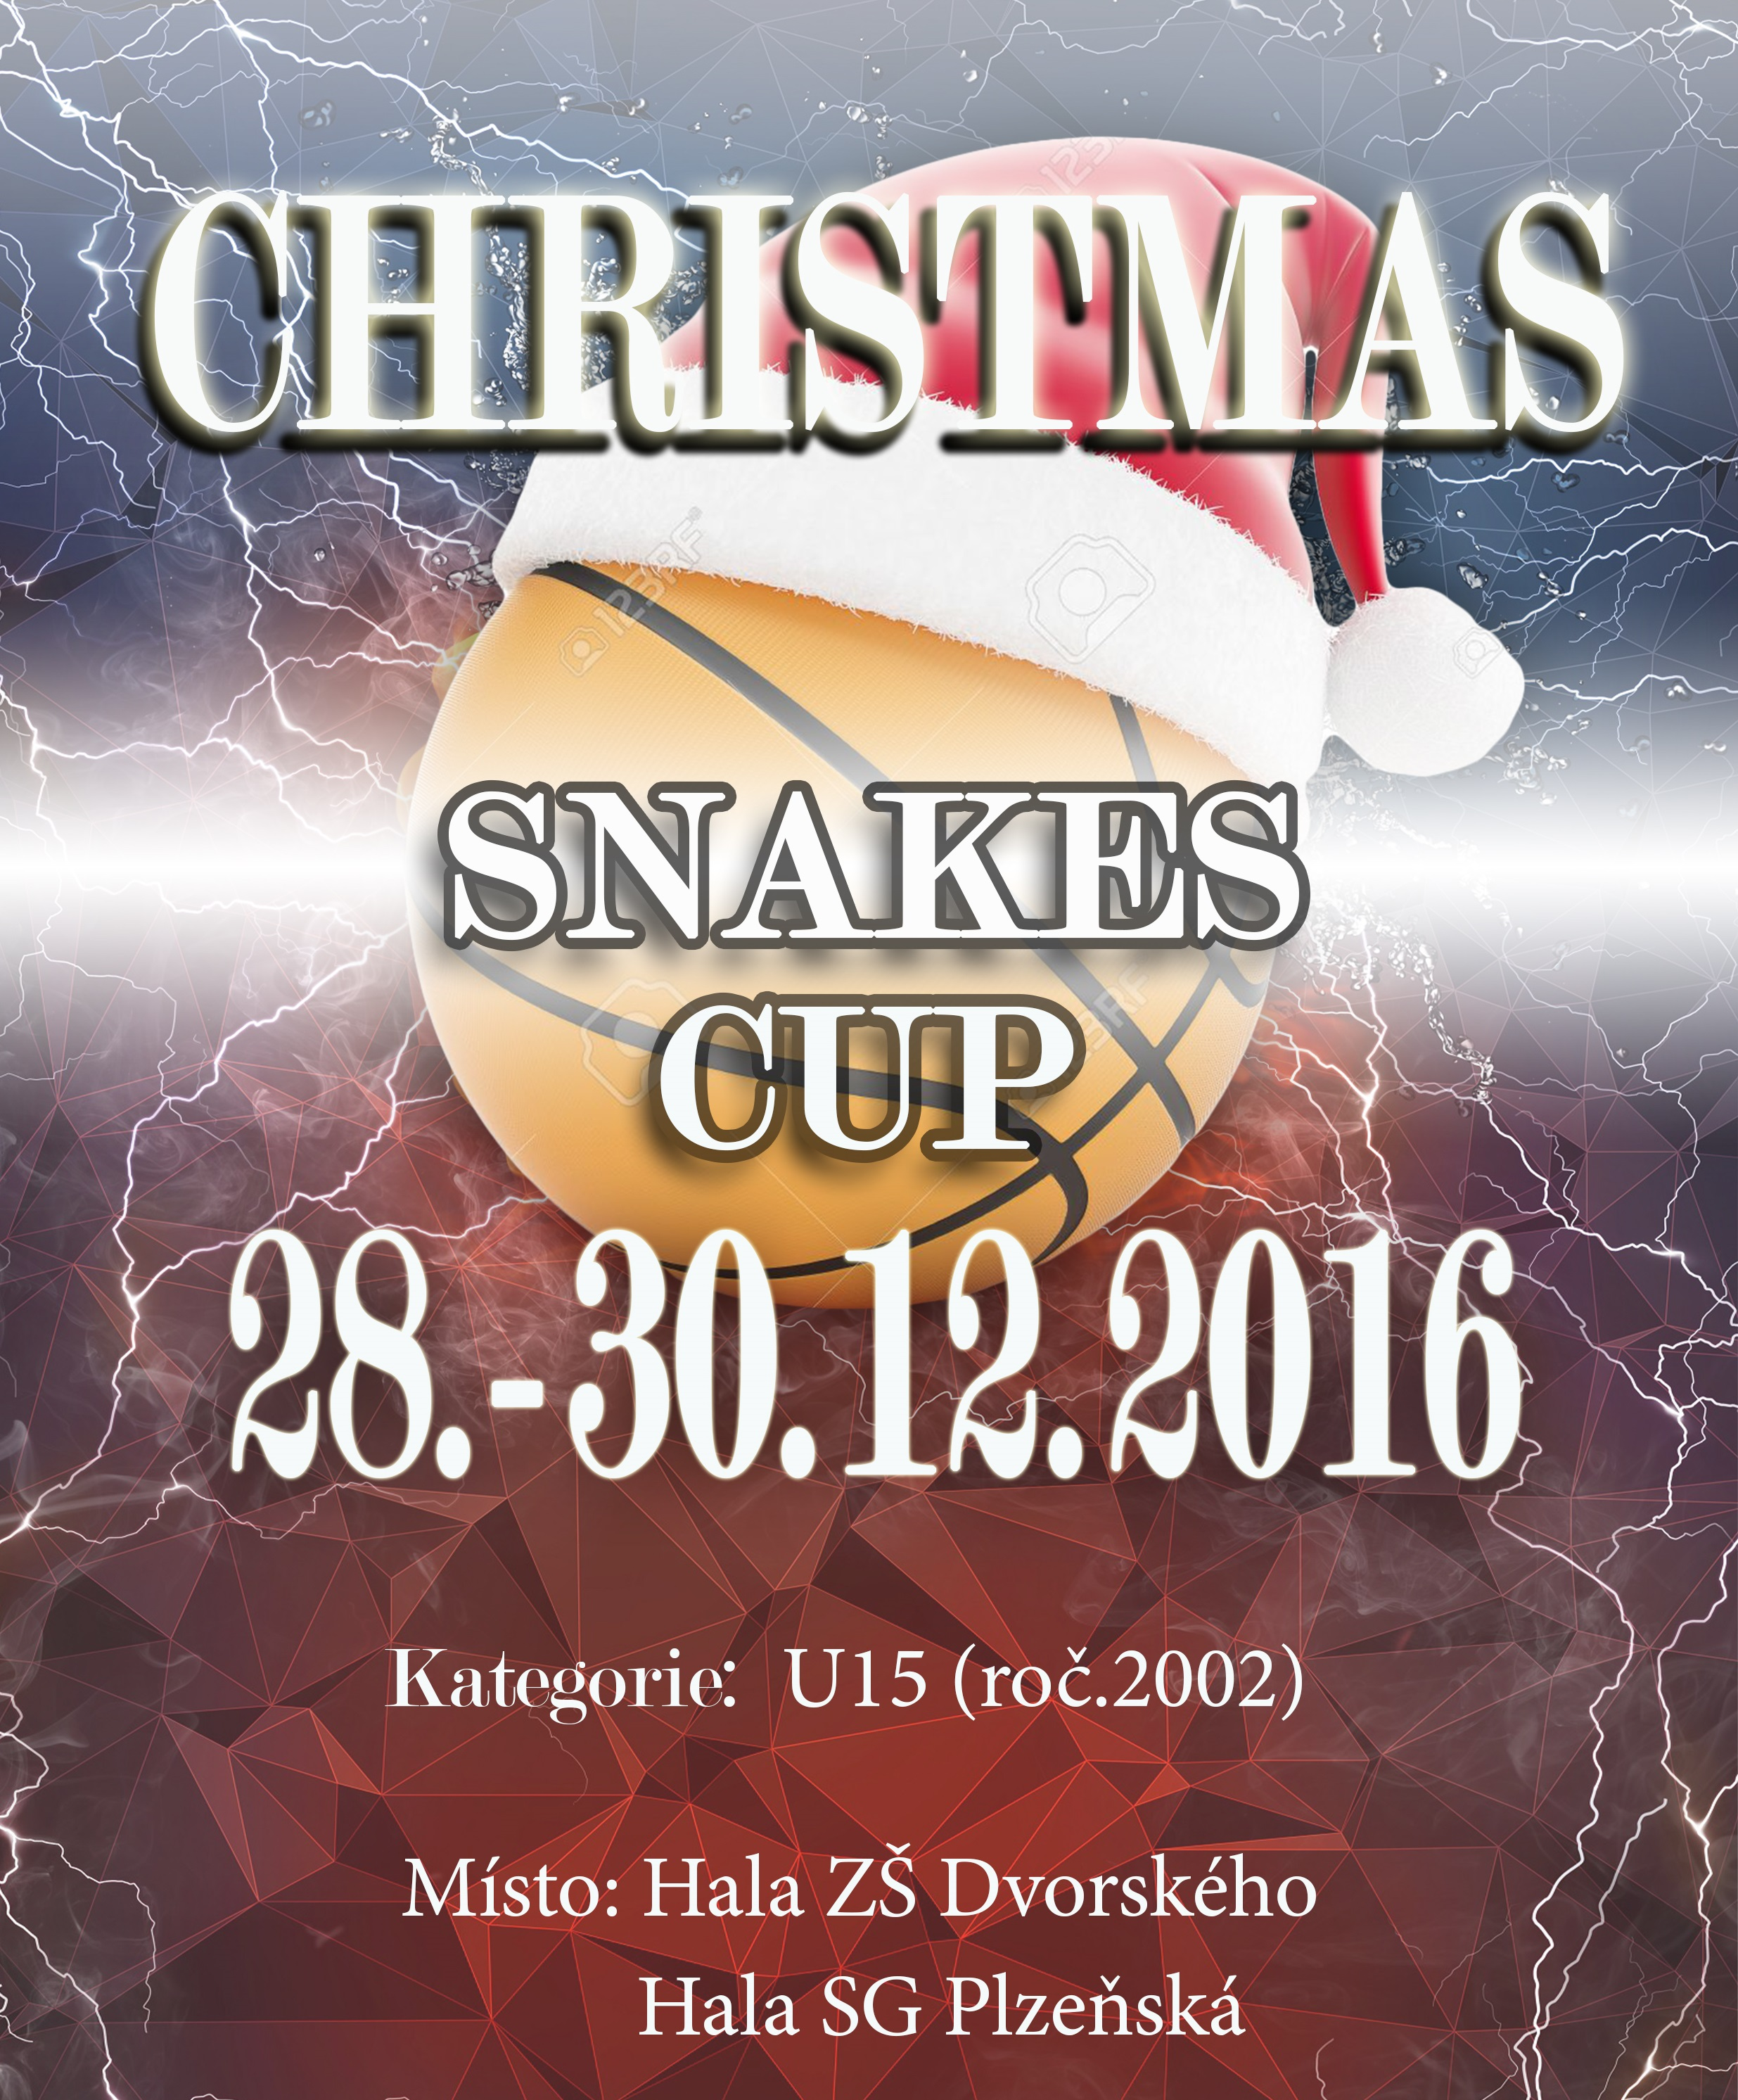 Christmas_snakes_cup